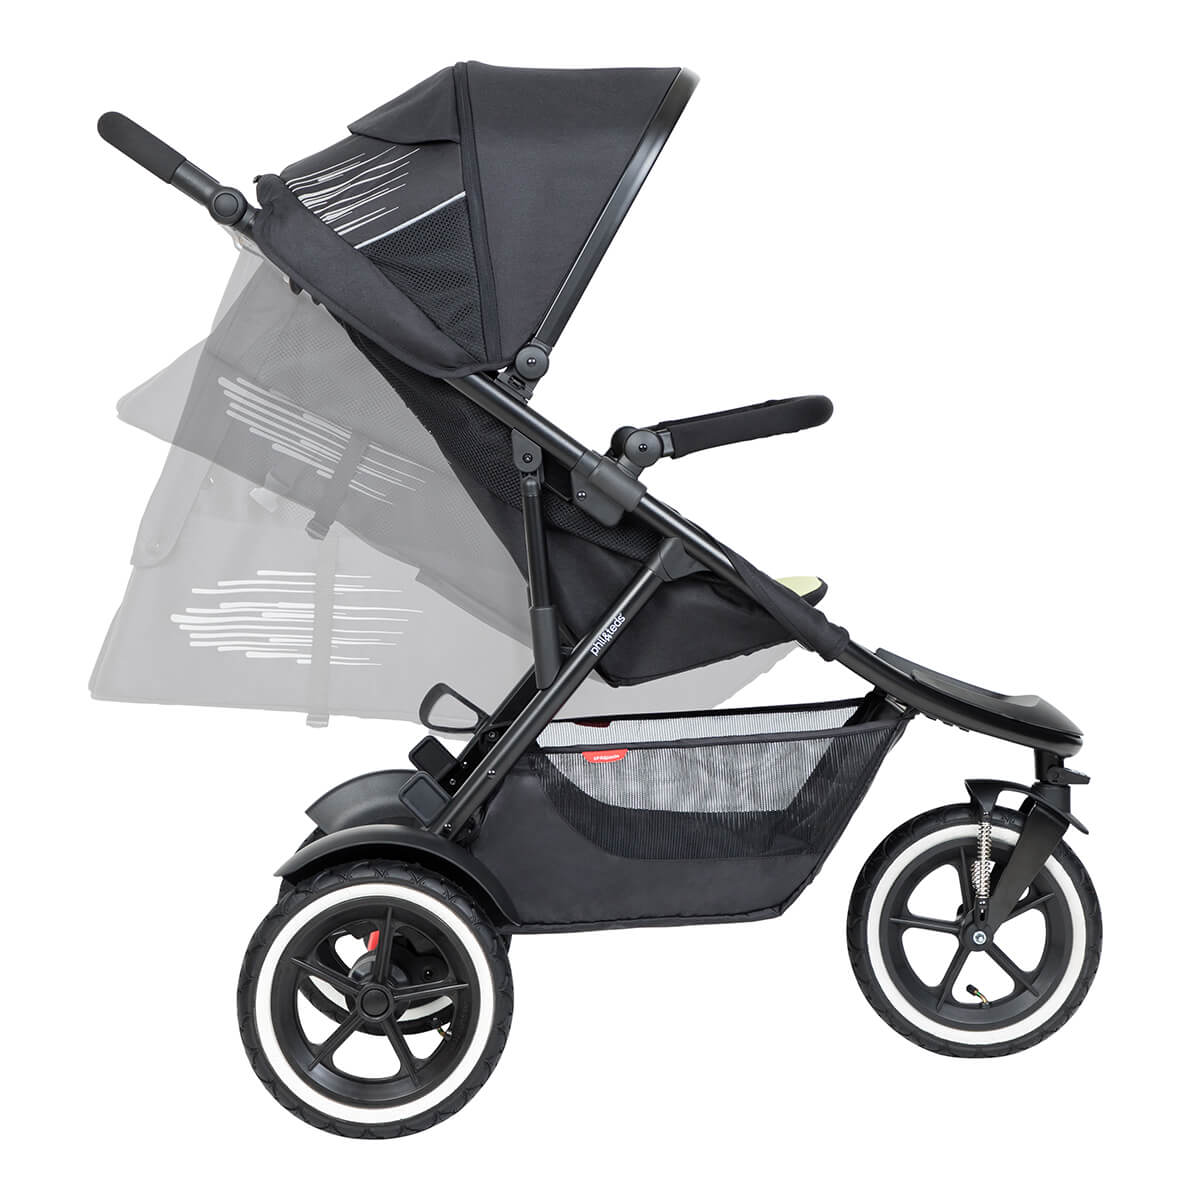 https://cdn.accentuate.io/4513463369824/19440099492024/philteds-sport-buggy-can-recline-in-multiple-angles-including-full-recline-for-newborn-baby-v1626486645091.jpg?1200x1200